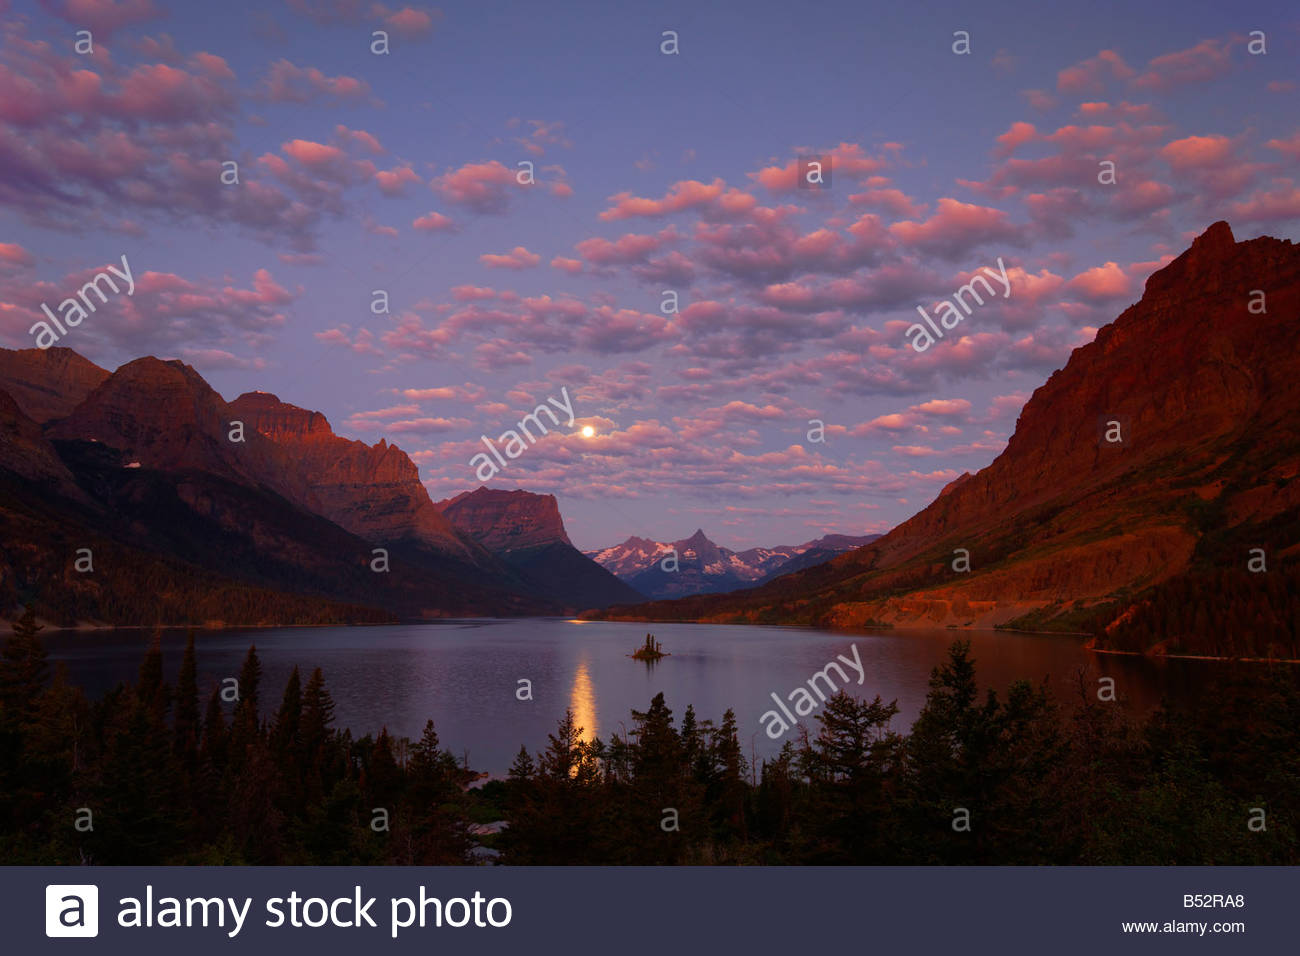 The full moon sets over St. Mary Lake as the first light of day reddens the skies over Glacier National Park, Montana. - Stock Image